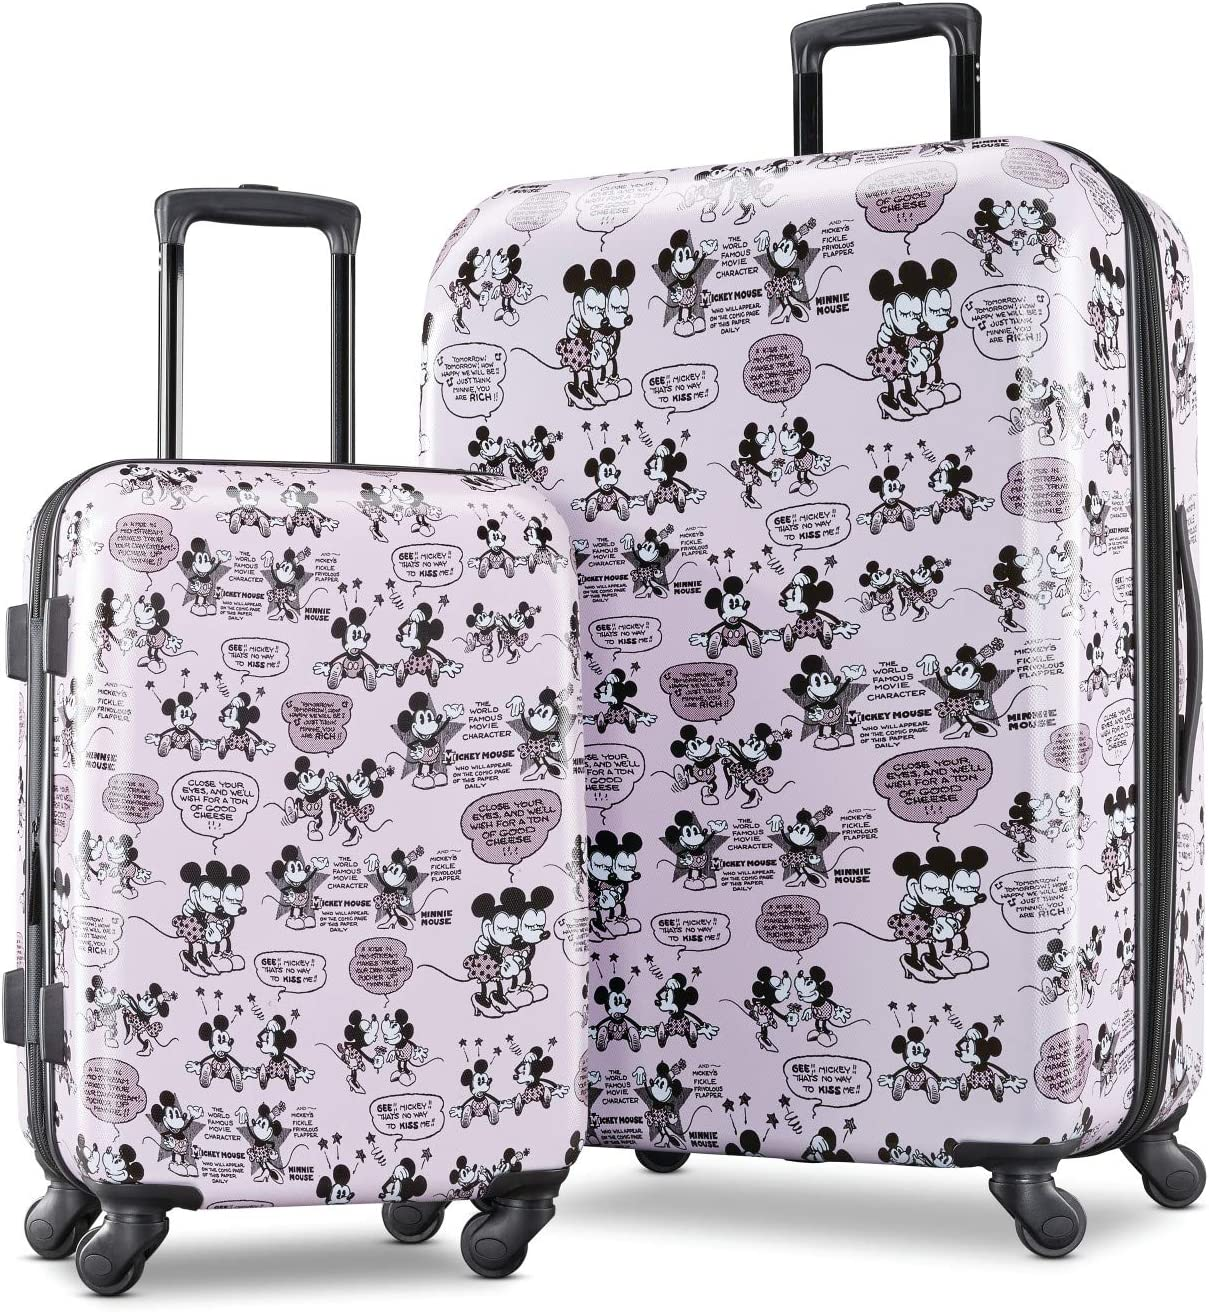 American Tourister Disney Hardside Luggage with Spinner Wheels, Mickey and Minnie Romance, 2-Piece Set (21/28)